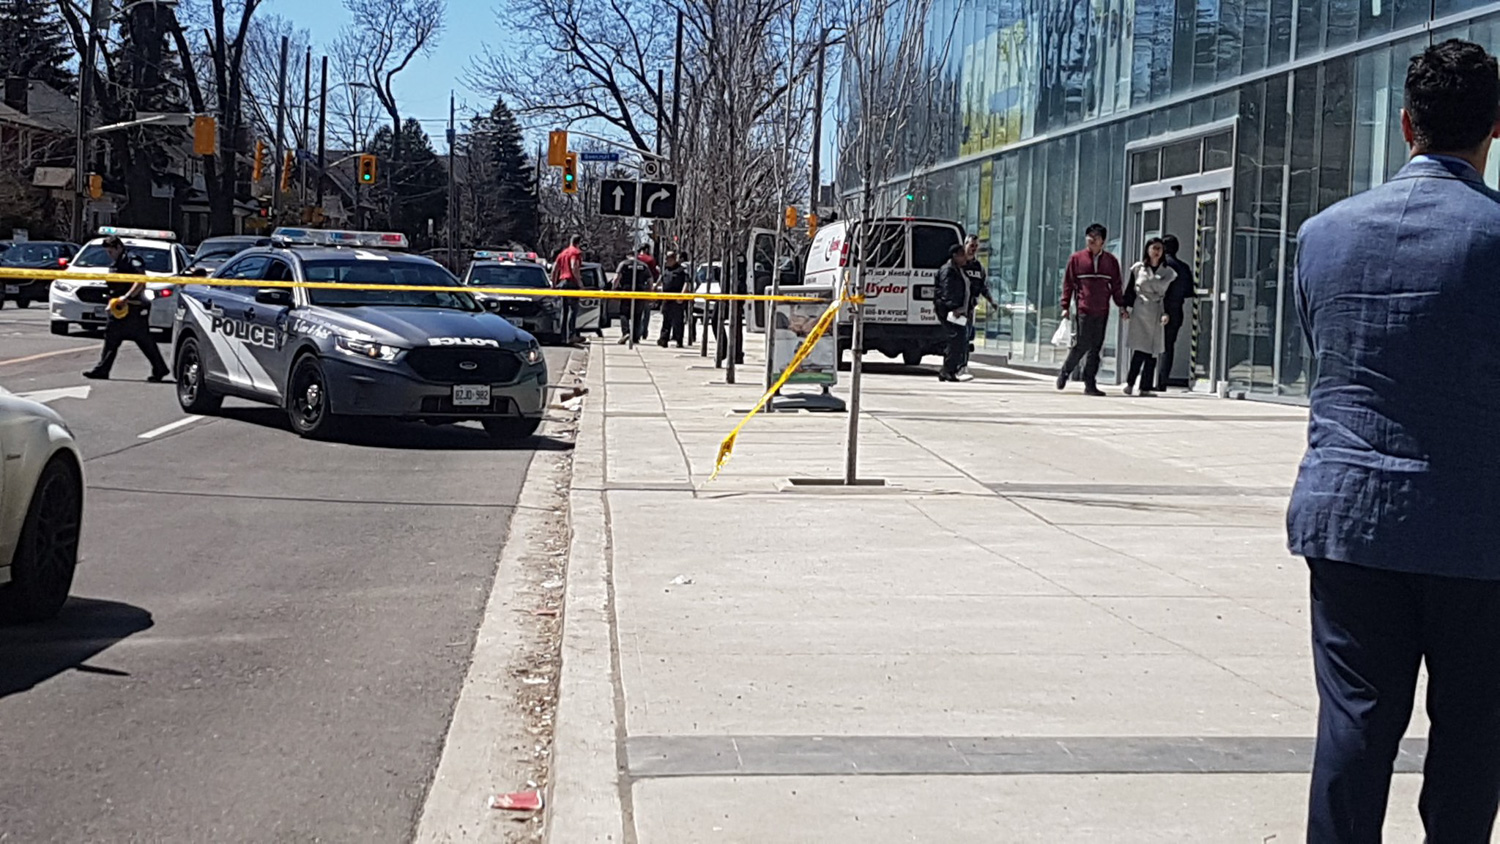 """<div class=""""meta image-caption""""><div class=""""origin-logo origin-image none""""><span>none</span></div><span class=""""caption-text"""">A white van hit pedestrians in Toronto,Canada, killing 9 people and injuring 16 more. (SophflyPro/Twitter)</span></div>"""